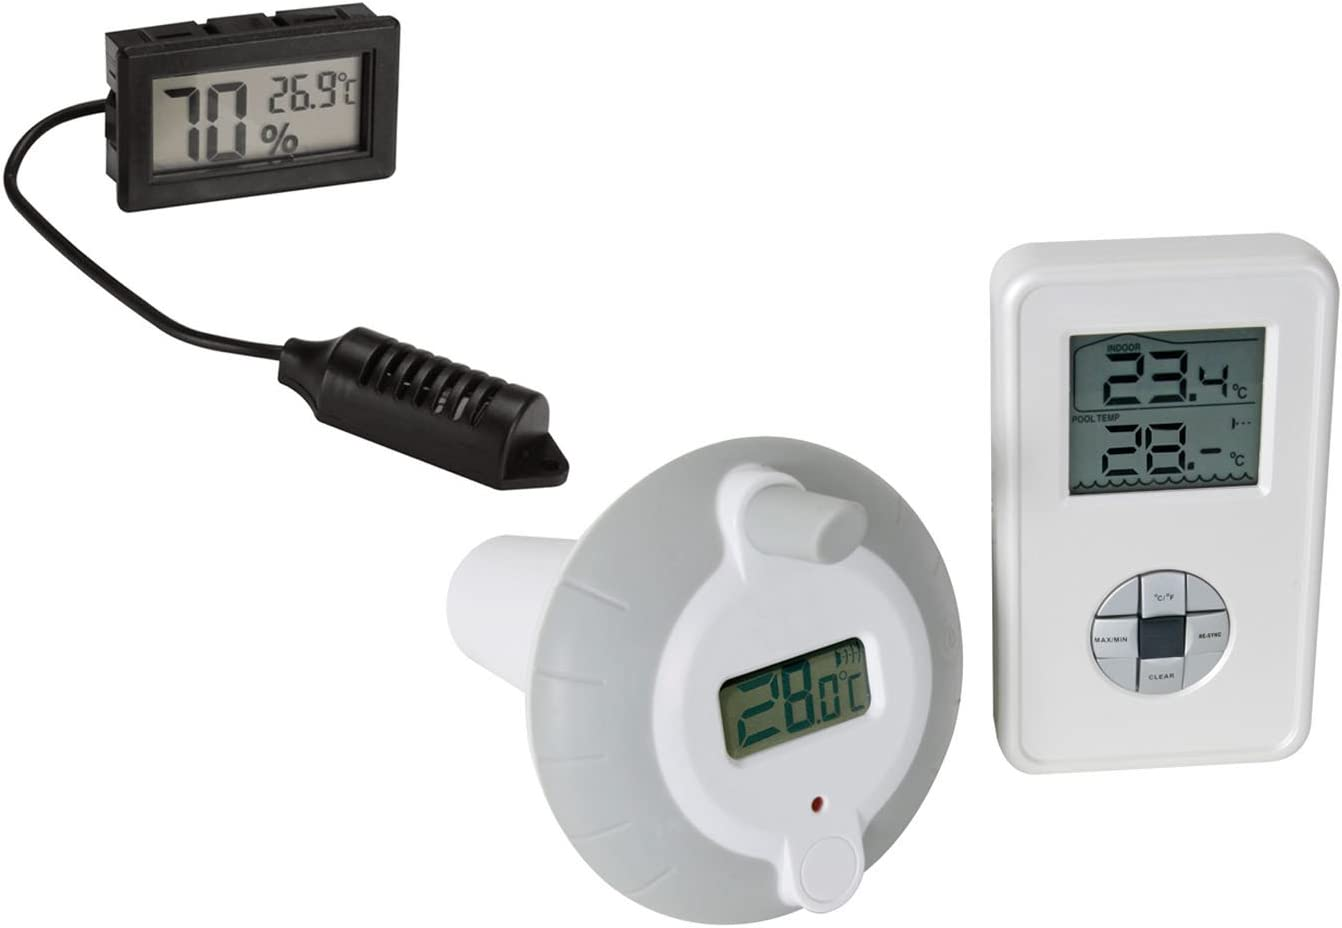 Reuvv Solar Powered Digital Thermometer Swimming Floating Pool Accurate Water Temperature Gauge